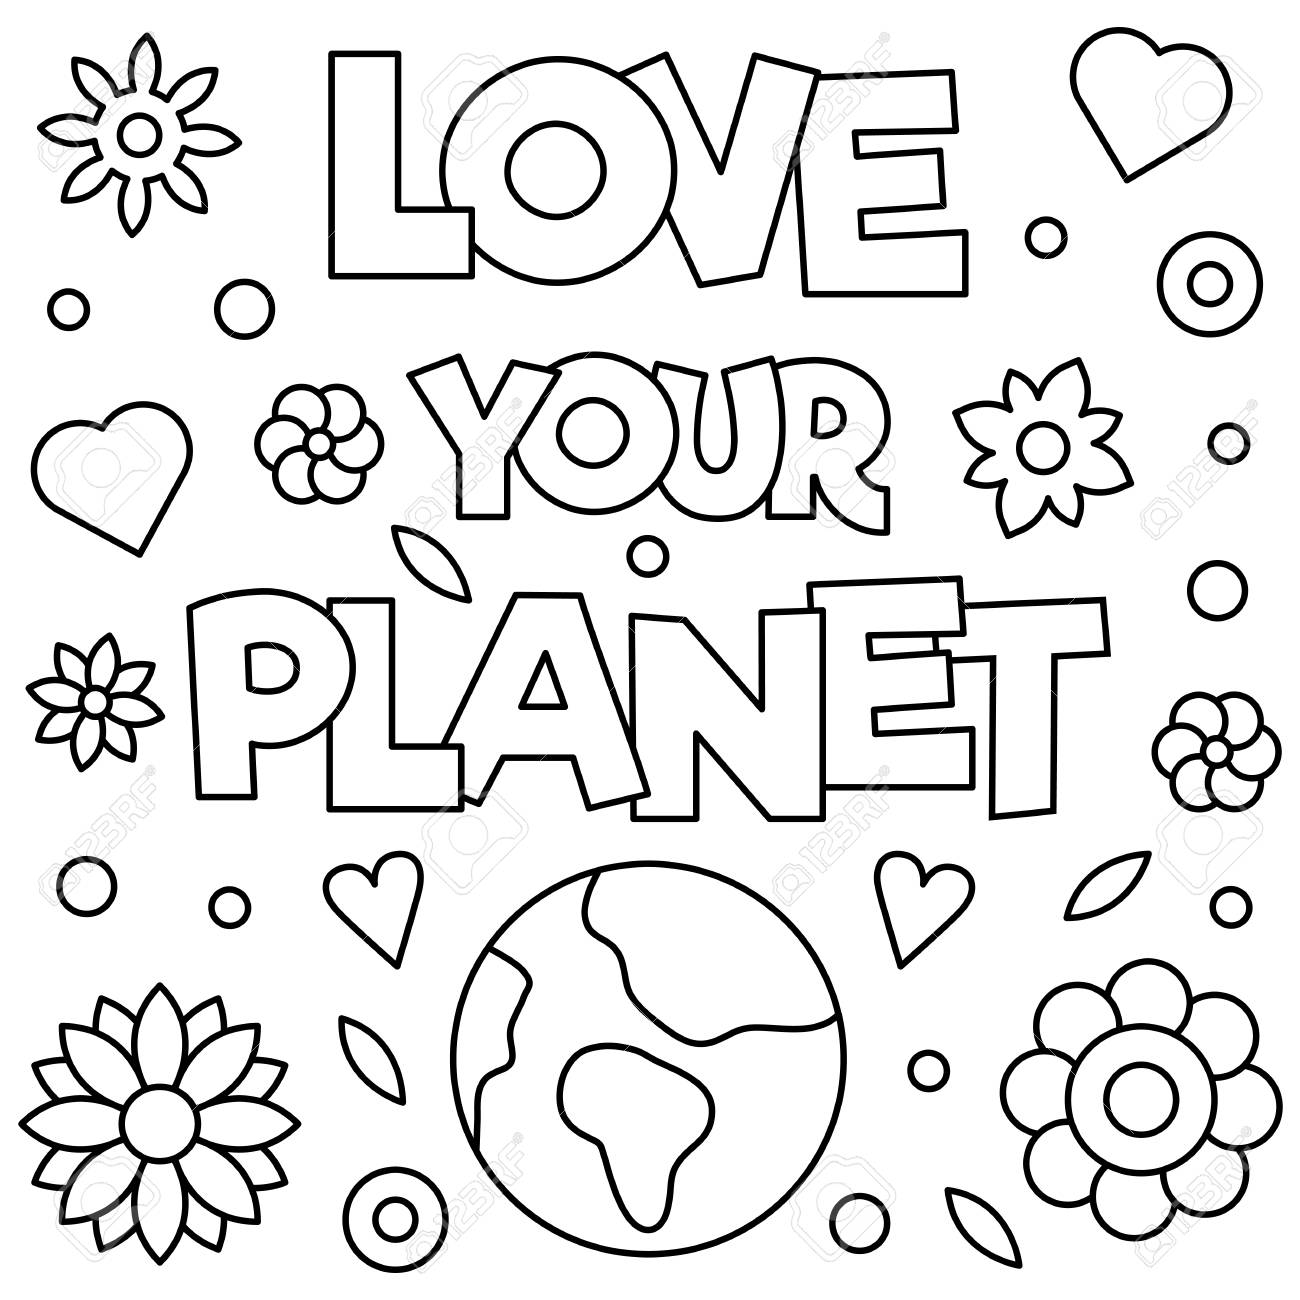 Love Your Planet Coloring Page Vector Illustration Royalty Free Cliparts Vectors And Stock Illustration Image 96068024